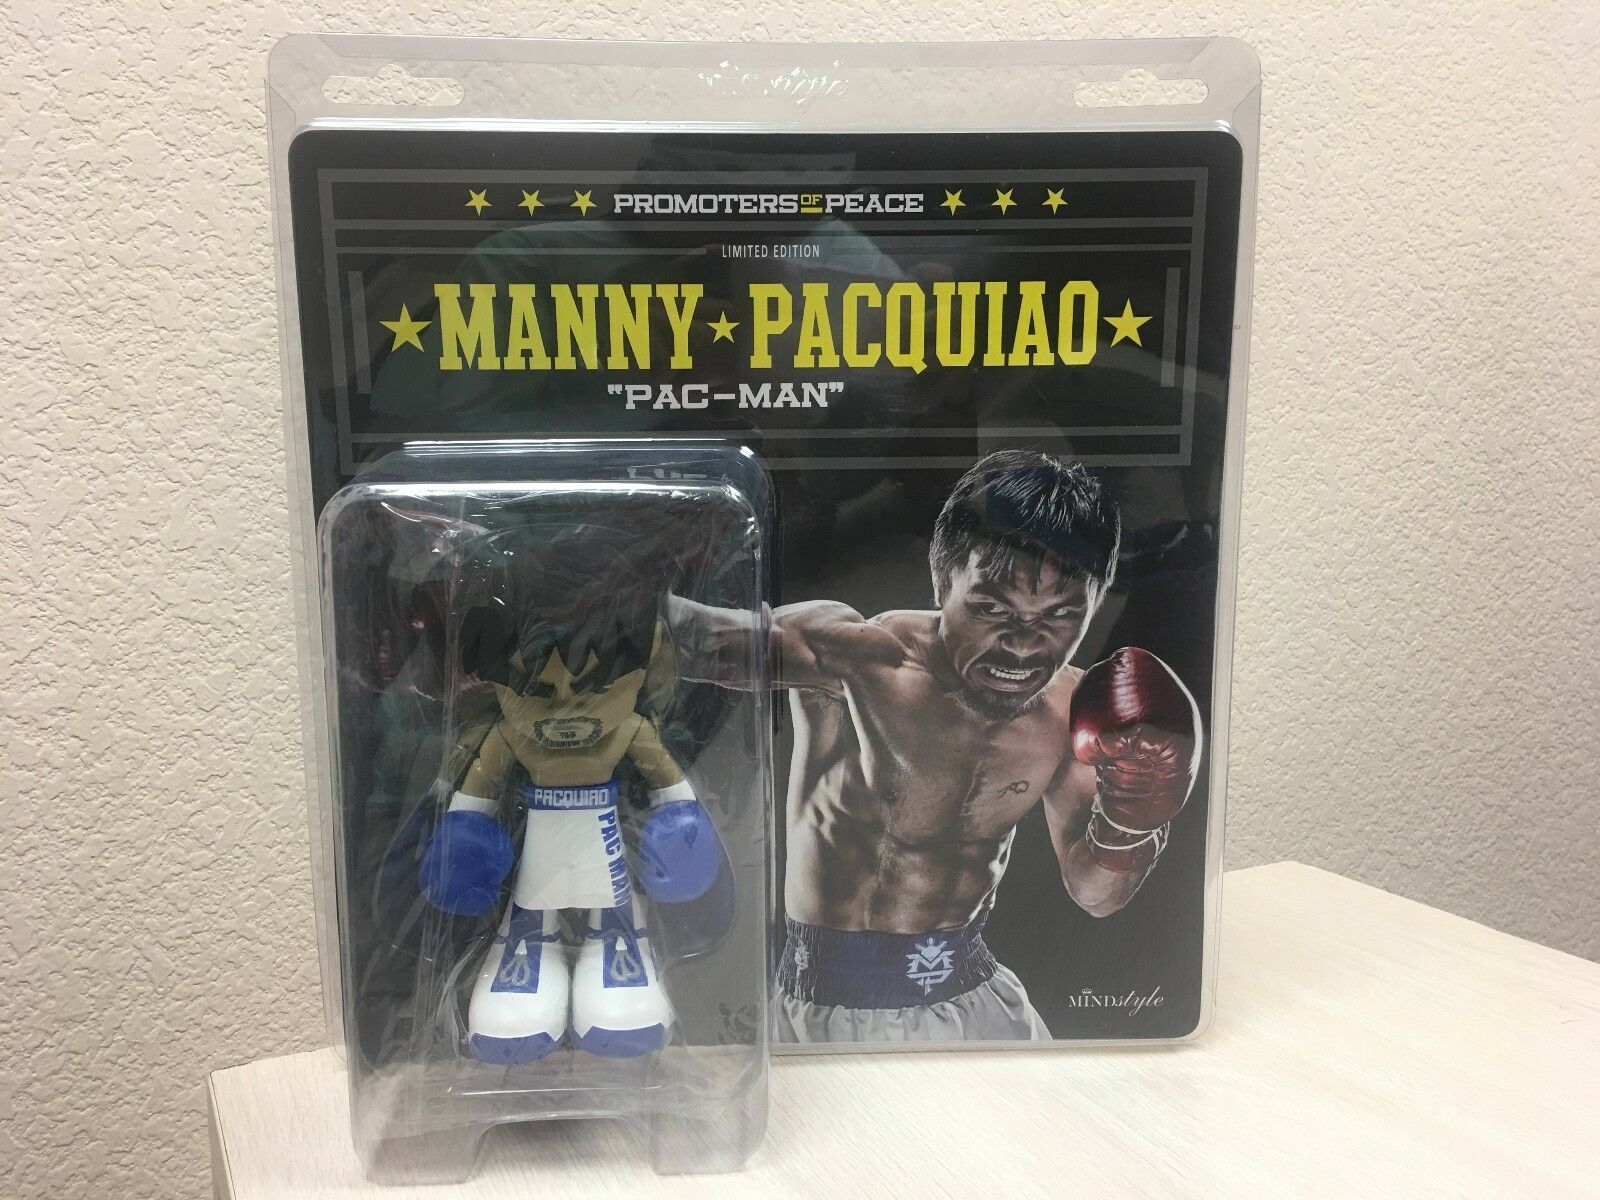 Promoters Peace MANNY PACQUIAO Pac-Man Mindstyle bluee White Original 7  Figure